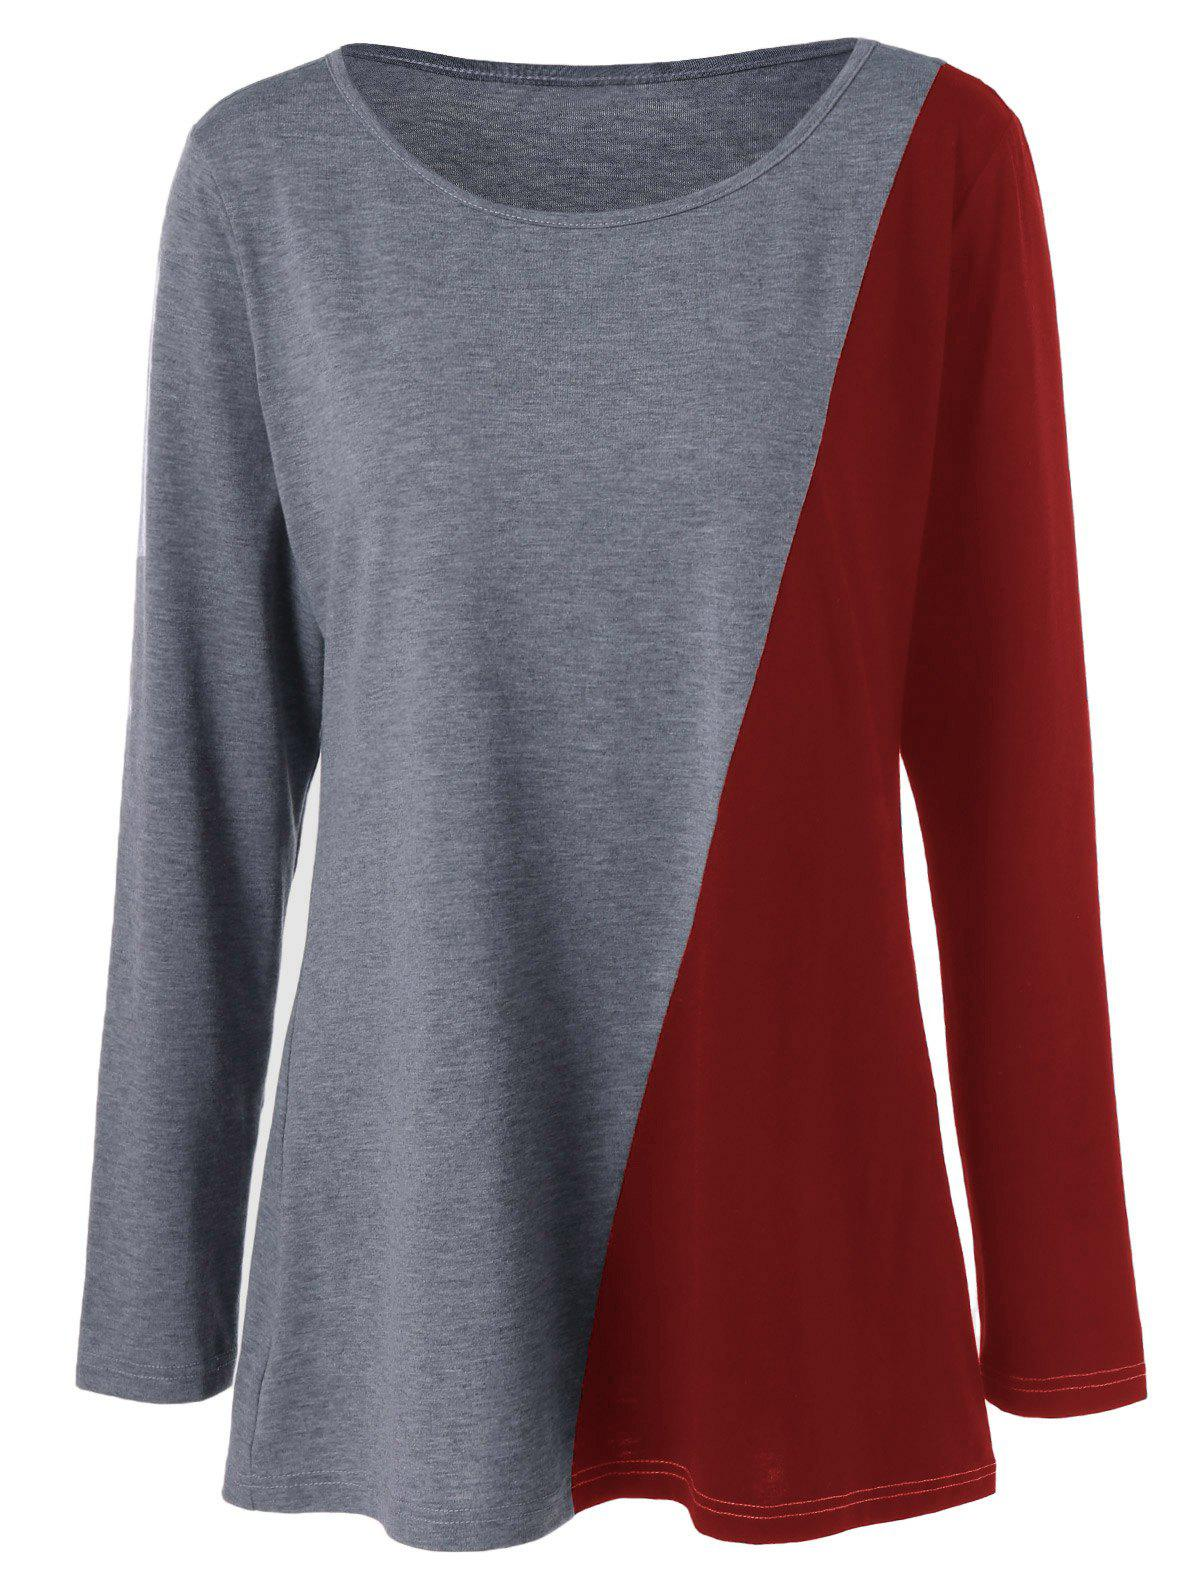 Plus Size Longline Two Tone Tee - RED XL